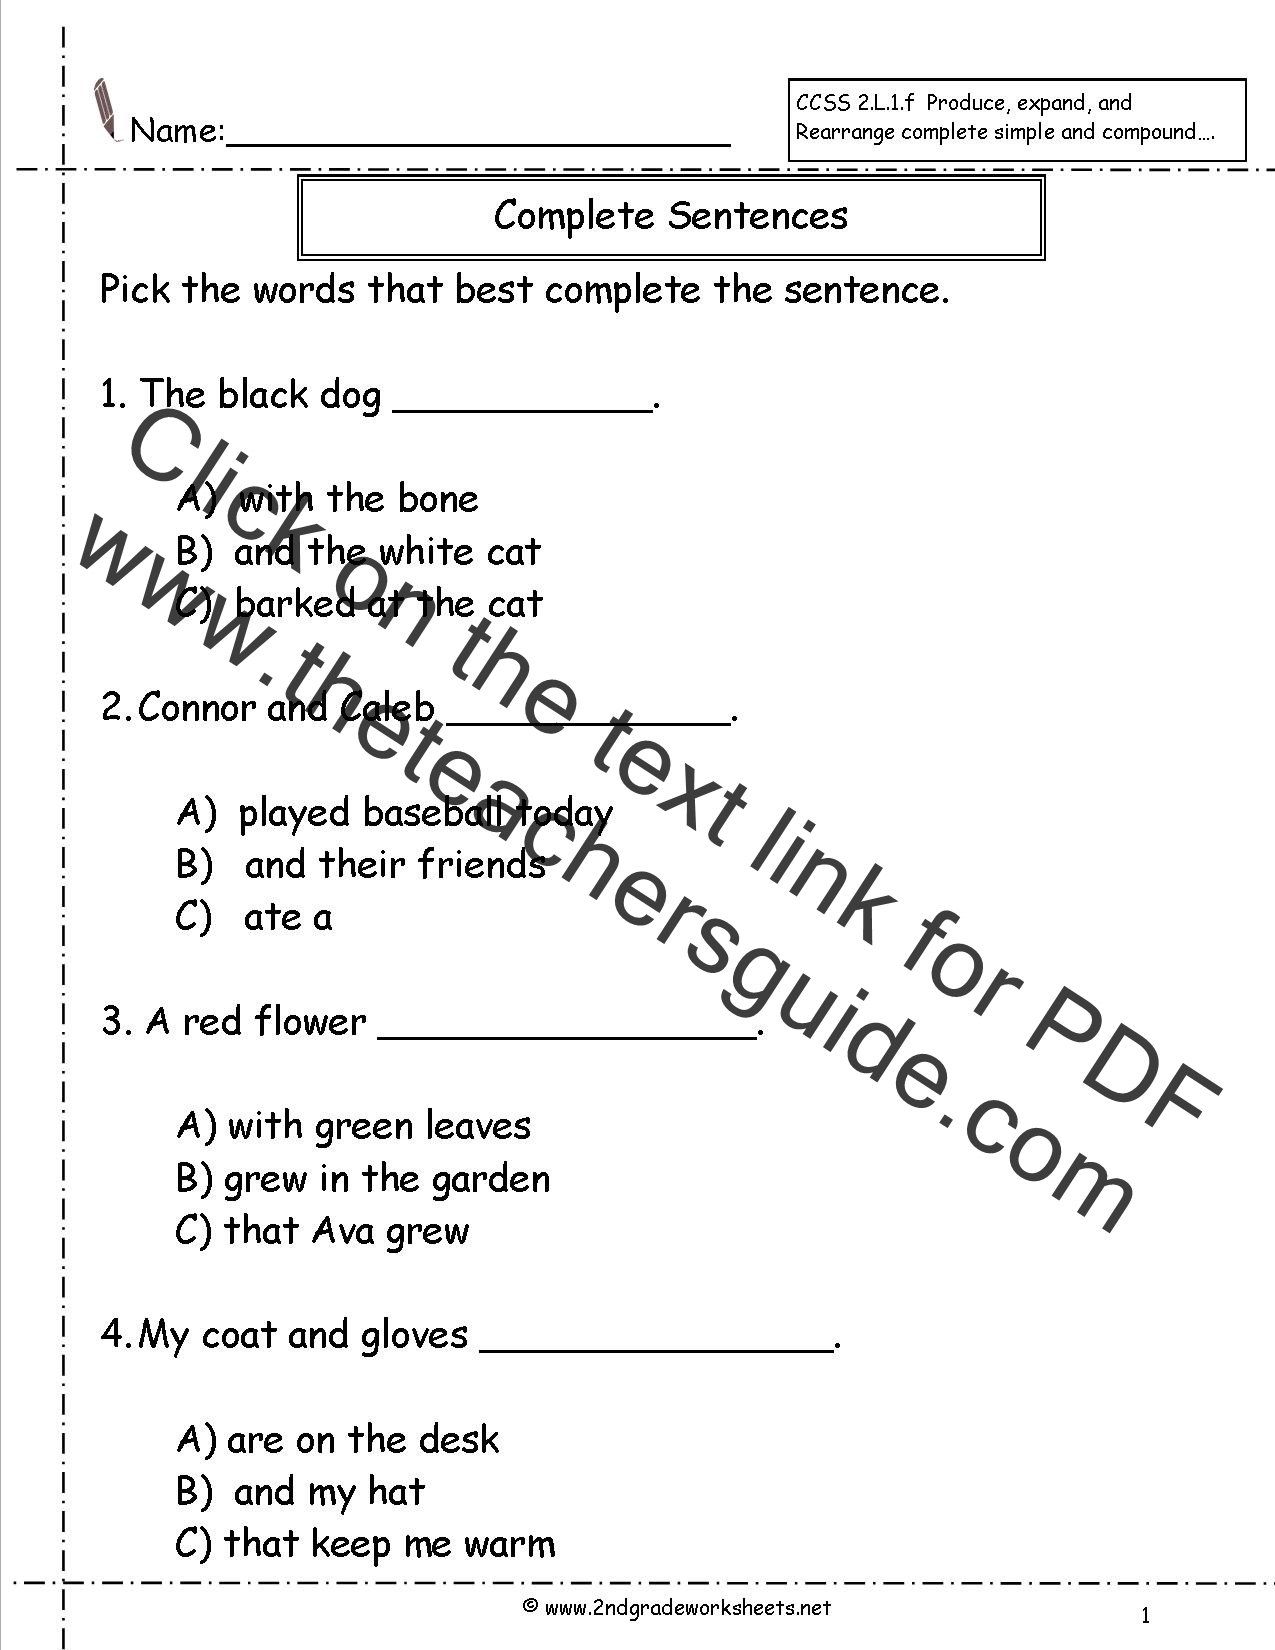 Second Grade Sentences Worksheets CCSS 2L1f Worksheets – Sentence Completion Worksheets